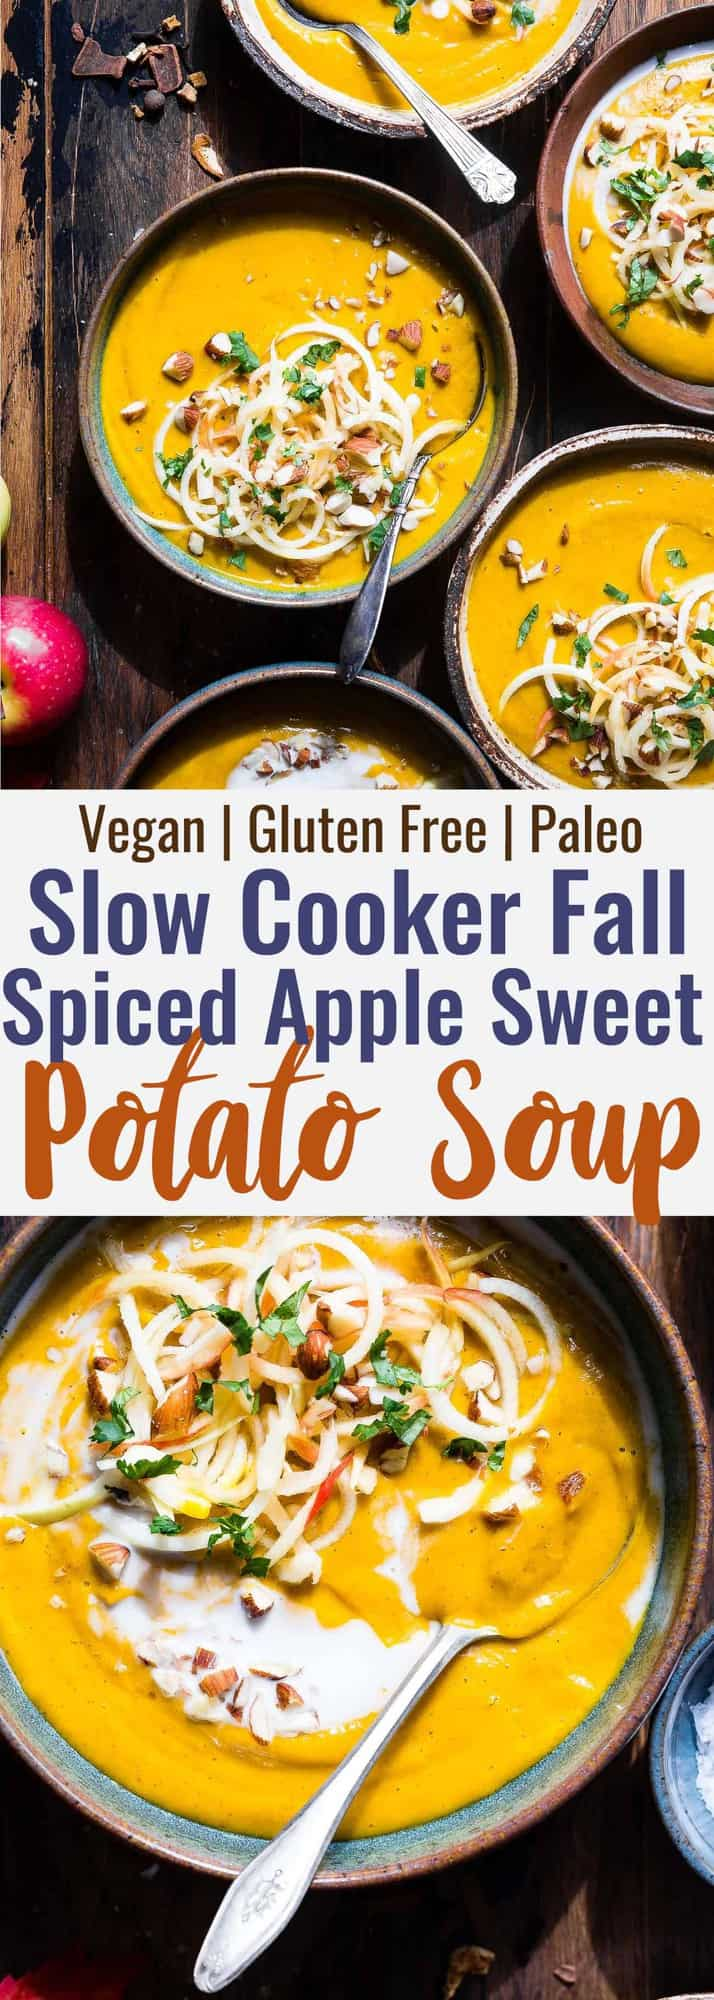 Slow Cooker Creamy Fall Vegan Sweet Potato Soup - this healthy sweet potato soup is made in the slow cooker for an EASY weeknight dinner that is loaded with spicy-sweet, cozy flavor! Gluten free, paleo and SO creamy and delicious! | #Foodfaithfitness | #Paleo #Glutenfree #Vegan #Dairyfree #slowcooker